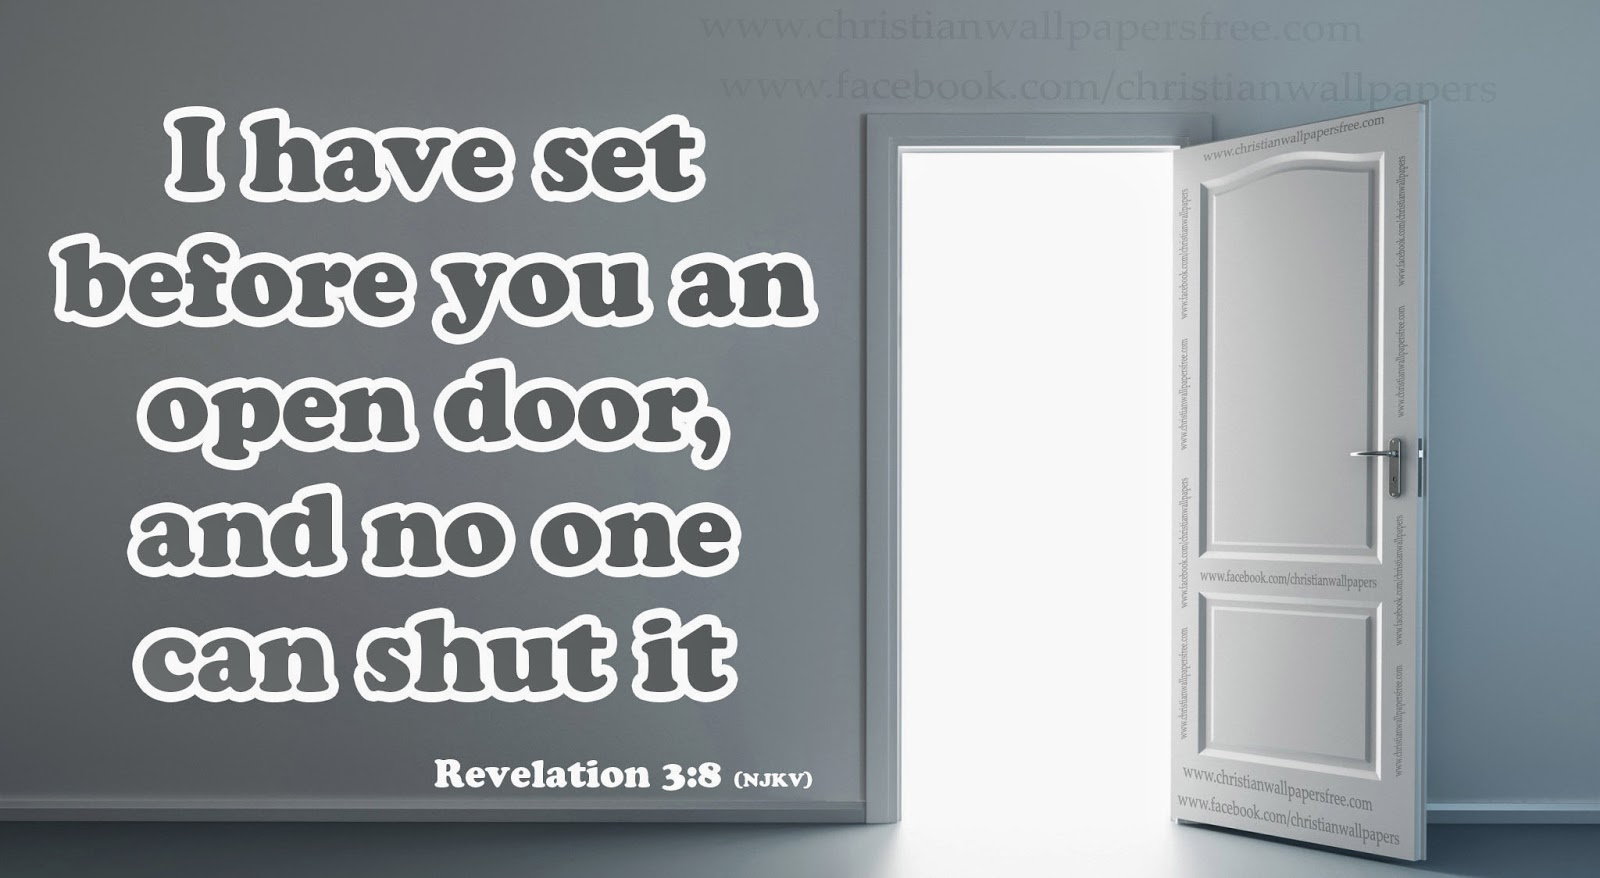 I have set before you an open door and no one can shut it  sc 1 st  Download HD Christmas \u0026 New Year 2018 Bible Verse Greetings Card ... & Download HD Christmas \u0026 New Year 2018 Bible Verse Greetings Card ...